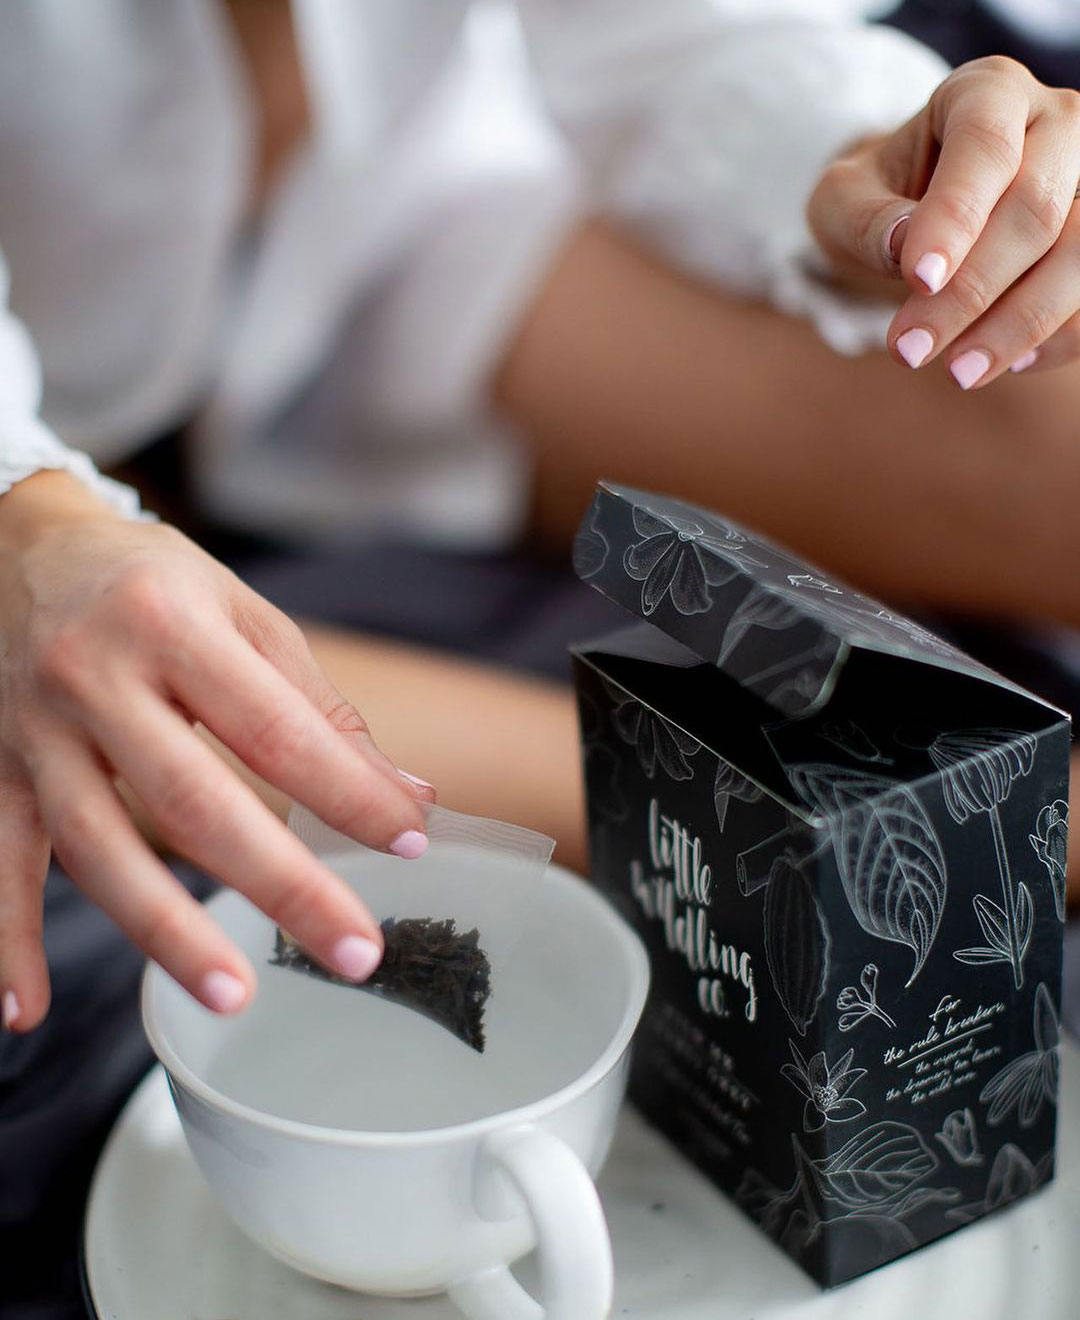 A person holds a teabag above a mug of hot water, about to drop it into the mug. A box of Little Wildling Co tea is visible next to the mug.